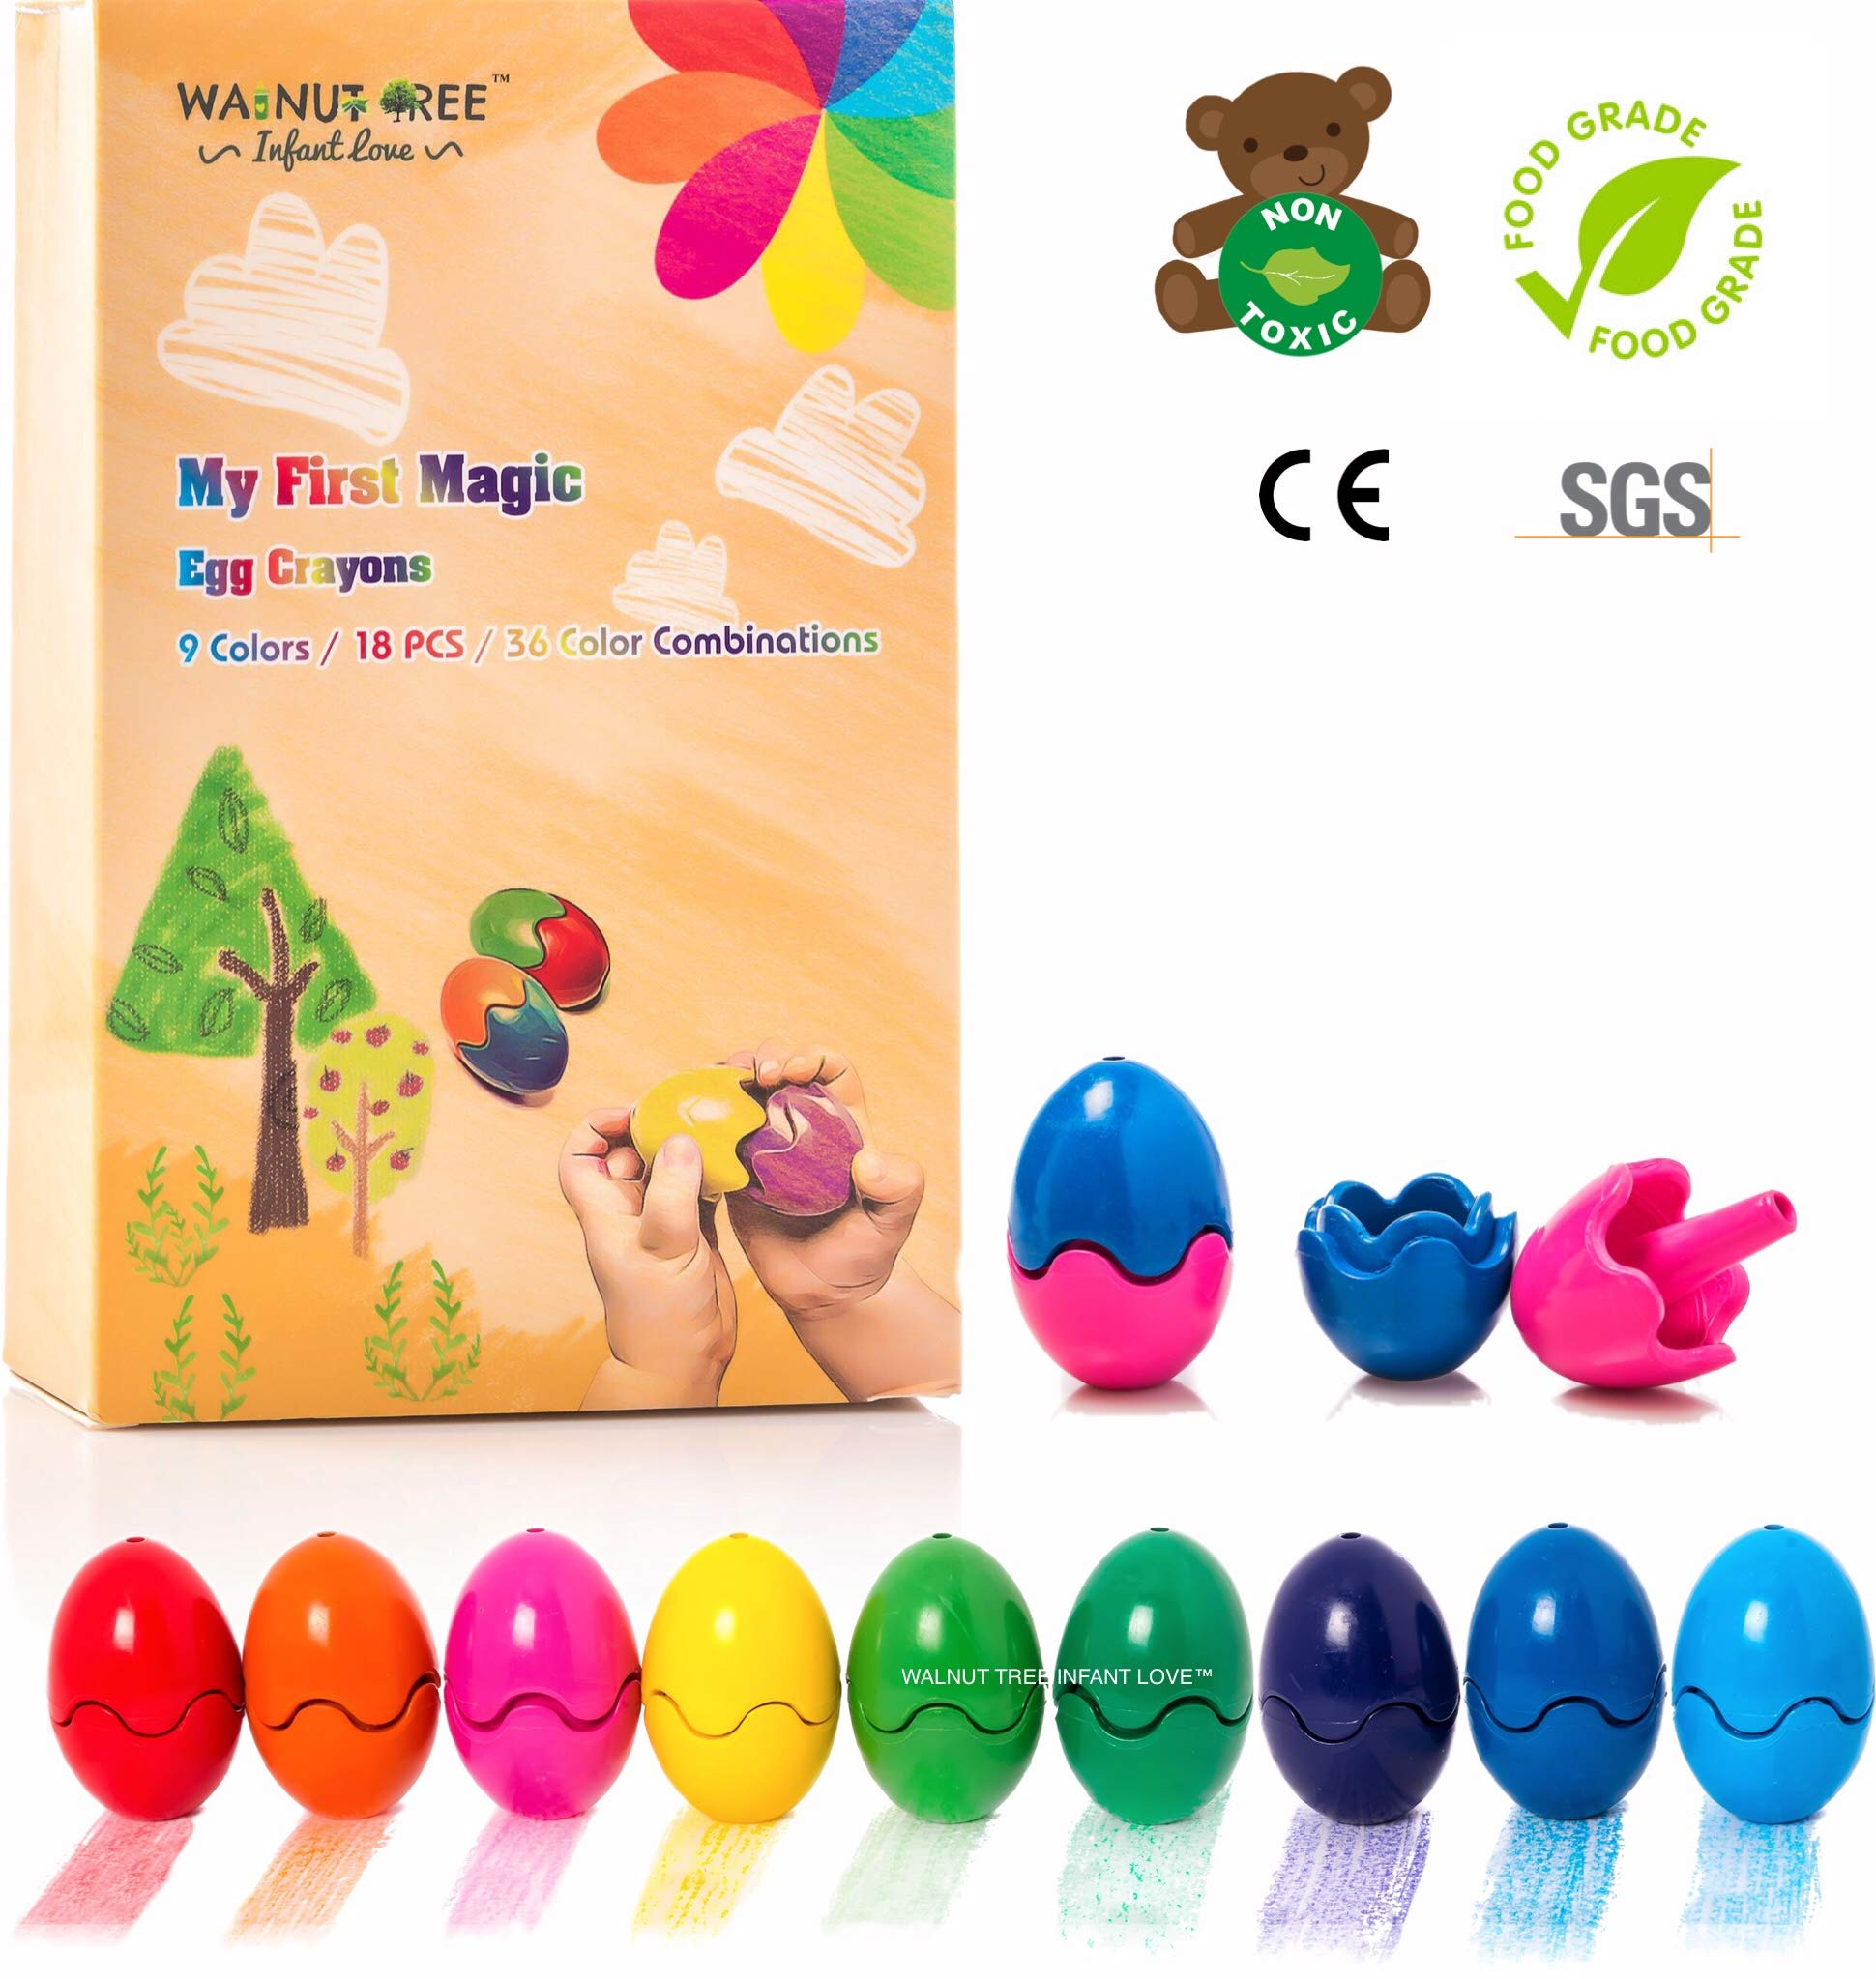 Jumbo Crayons [Montessori] for Toddlers ages 4-8 | Child Development Art & Activity Set | Easter Egg Crayons | Non Toxic 9 Colors & Pcs |Palm Grip for Toddlers/Children, Washable, Non Toxic